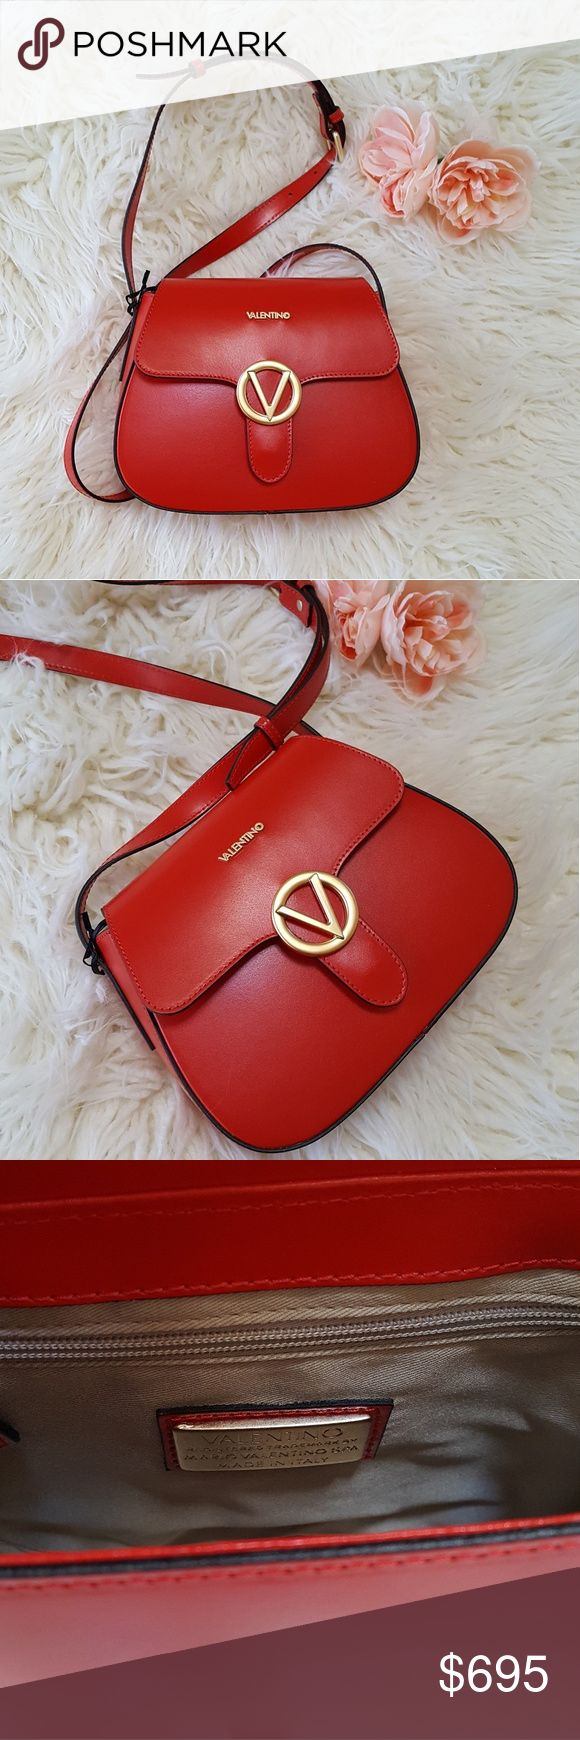 💕HP!💕NWT Authentic Red Leather Valentino Bag Authentic red leather Valentino crossbody made in Italy. Comes with dustbag. Gold tone accents. Gooooorgeous!!!😍😍 ***Host pick 1/30/18 Best in Bags*** *Open to offers Valentino Bags Crossbody Bags